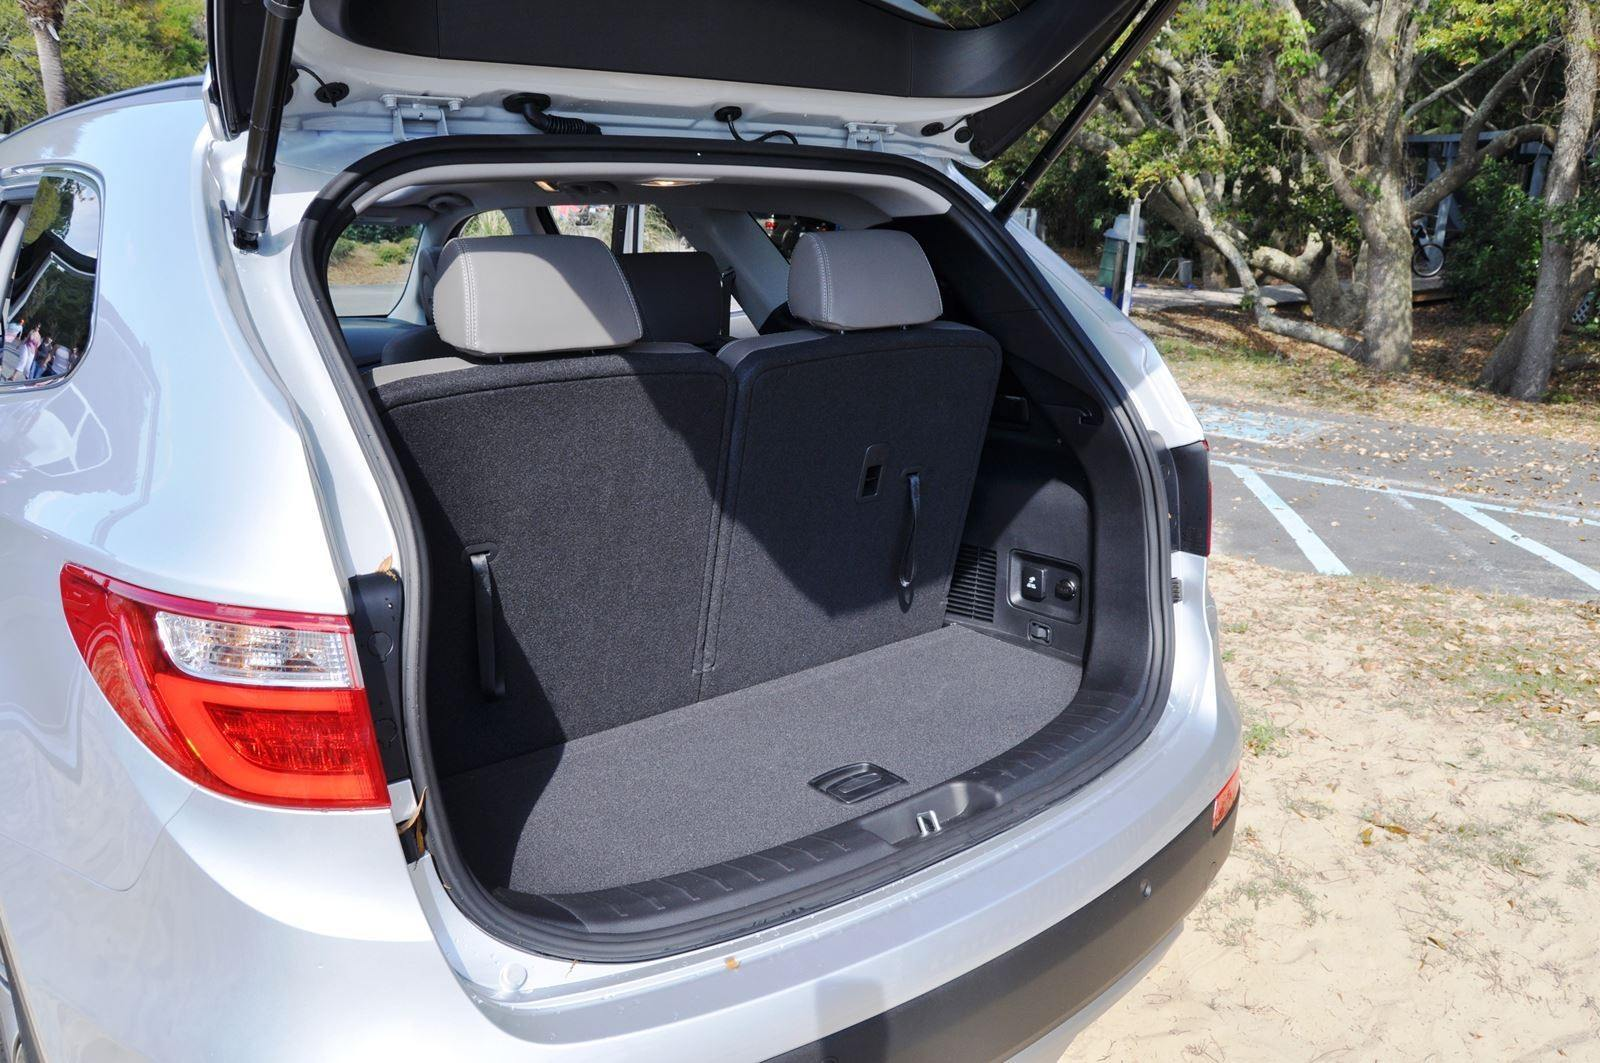 2015 Hyundai Santa Fe LWB Ultimate - Interior Photos 9